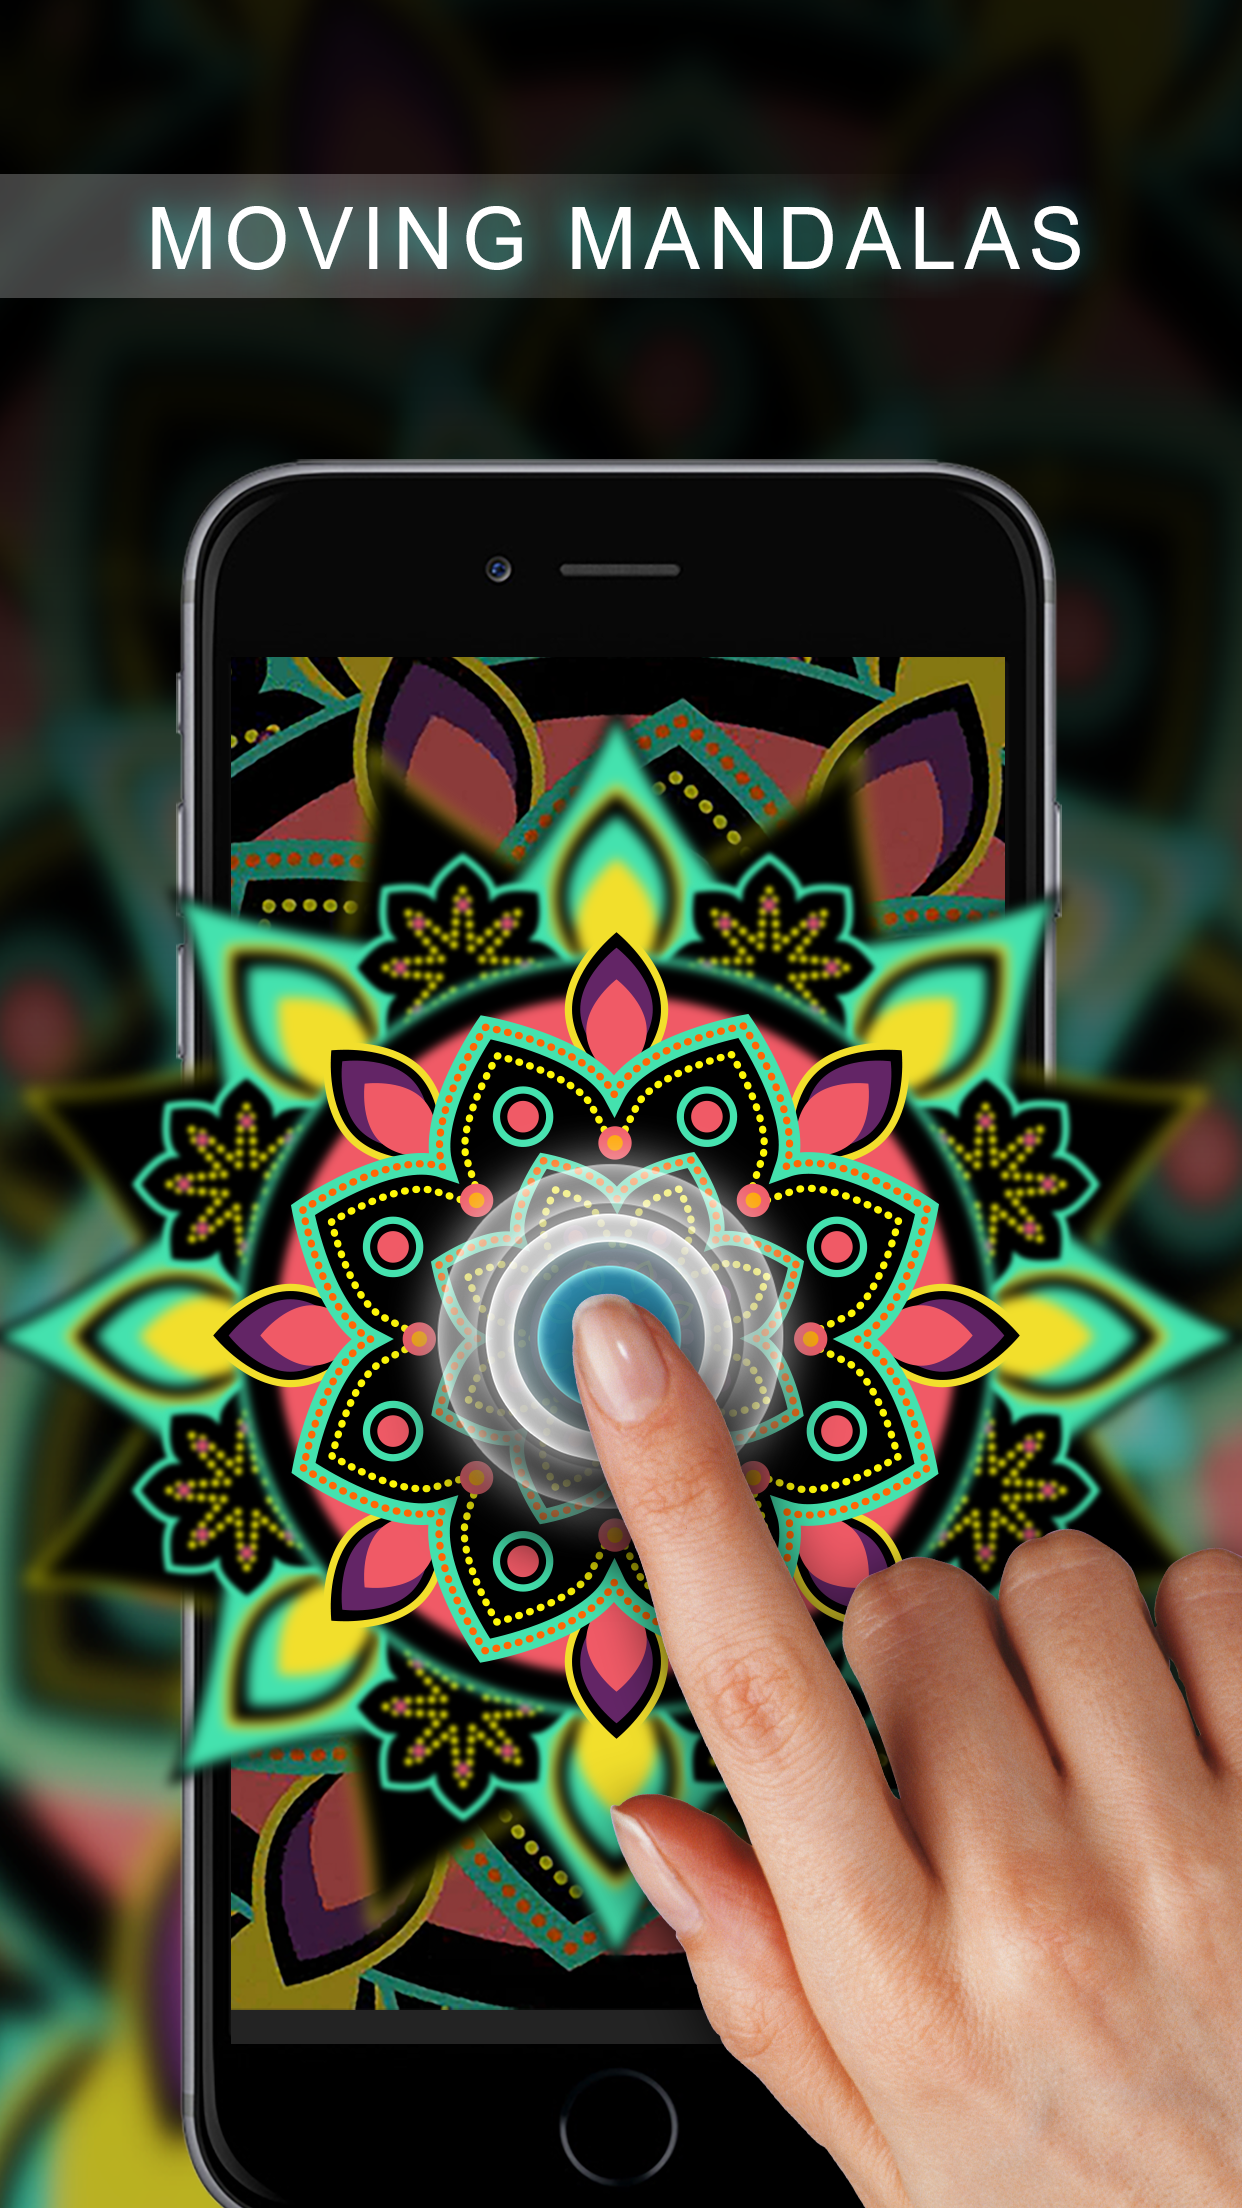 Pin by Spark So on Live Mandala Wallpapers for iPhone | Locked wallpaper, Iphone wallpaper ...